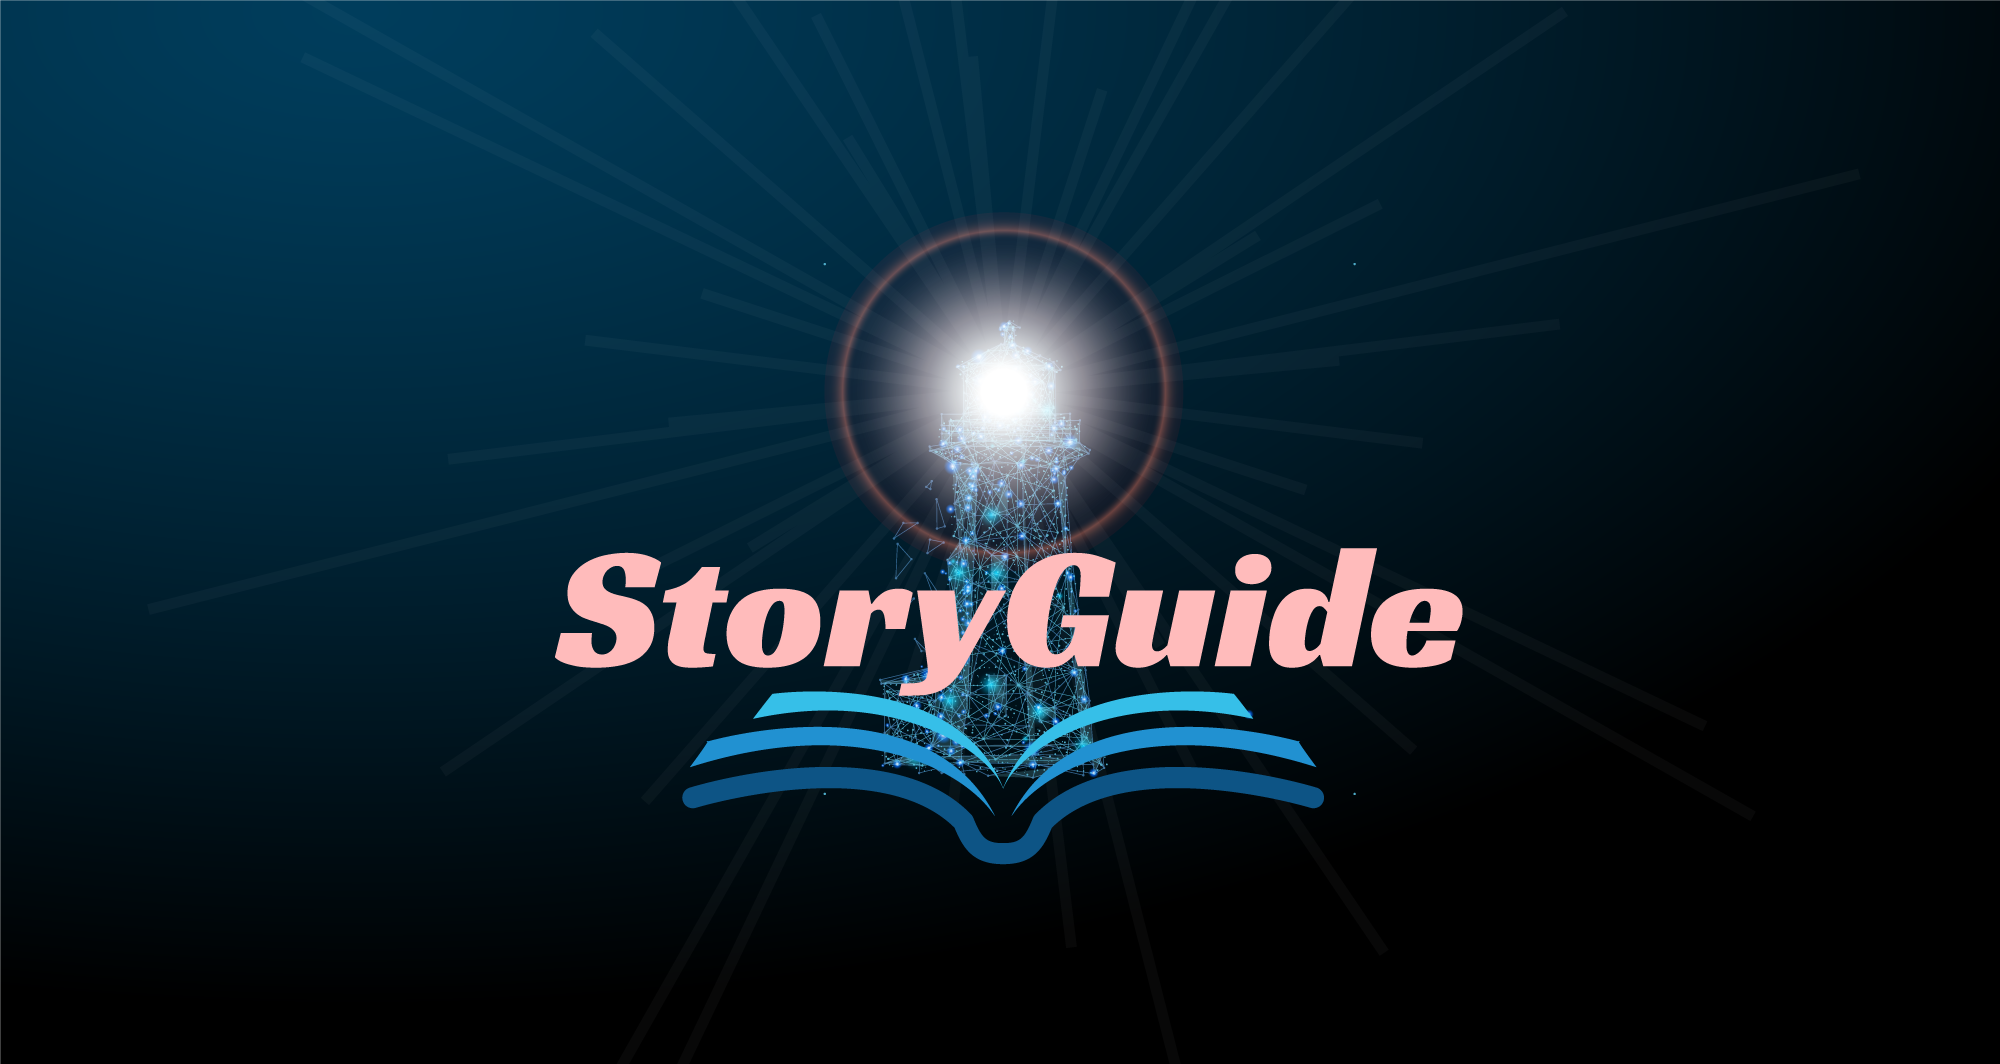 StoryGuide.ai